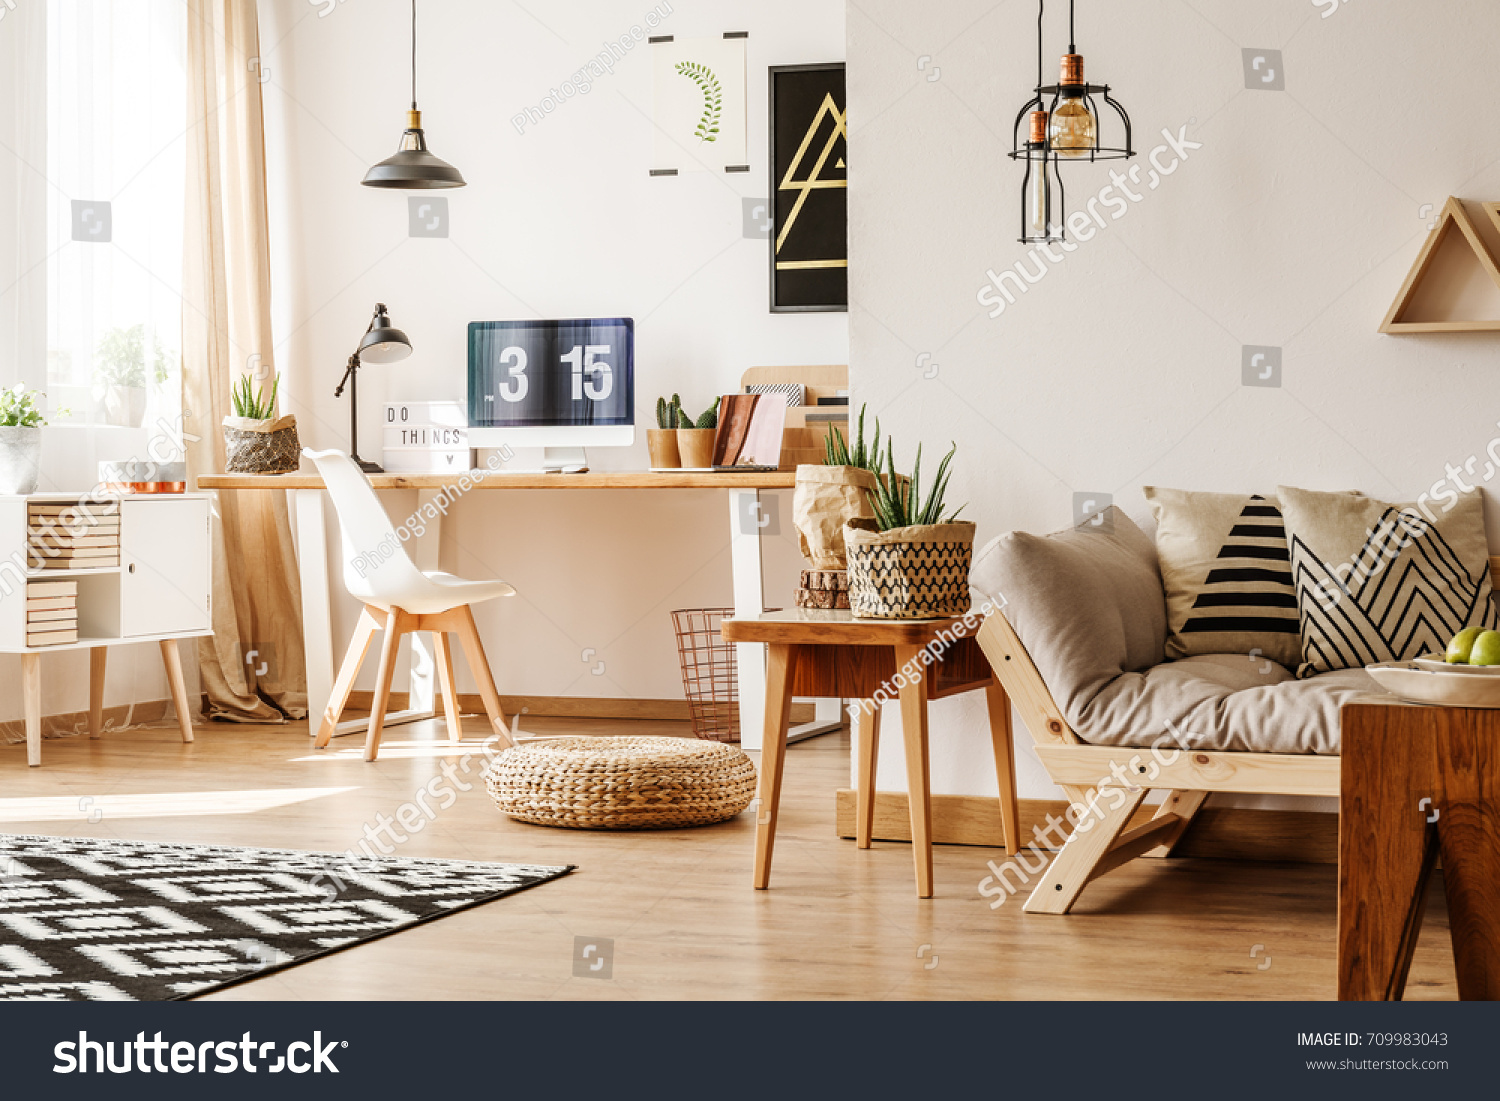 Modern loft interior full natural wooden stockfoto jetzt